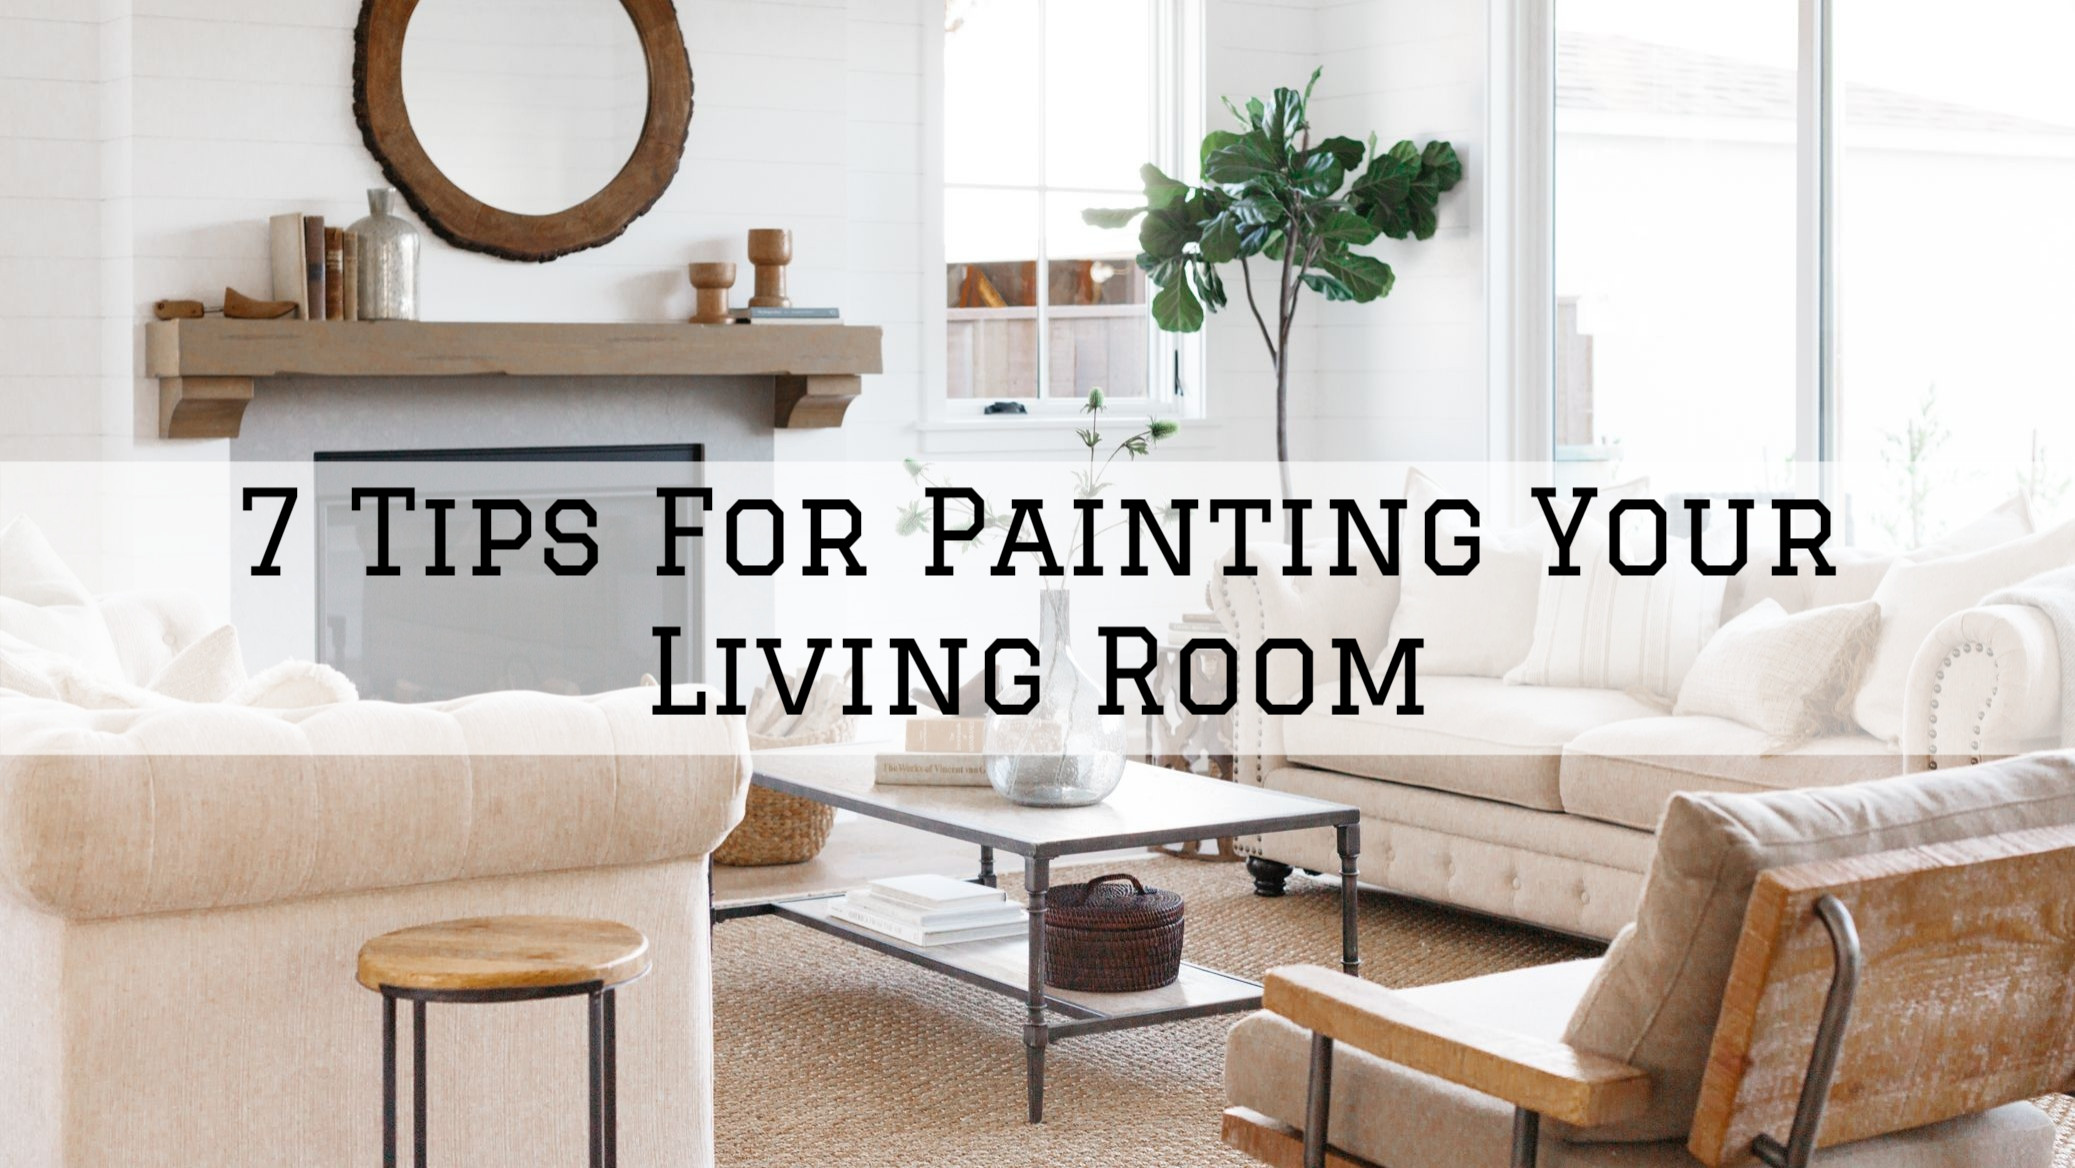 28-08-2021 Steves Quality Painting And Washing Green Lake WI tips for painting your living room